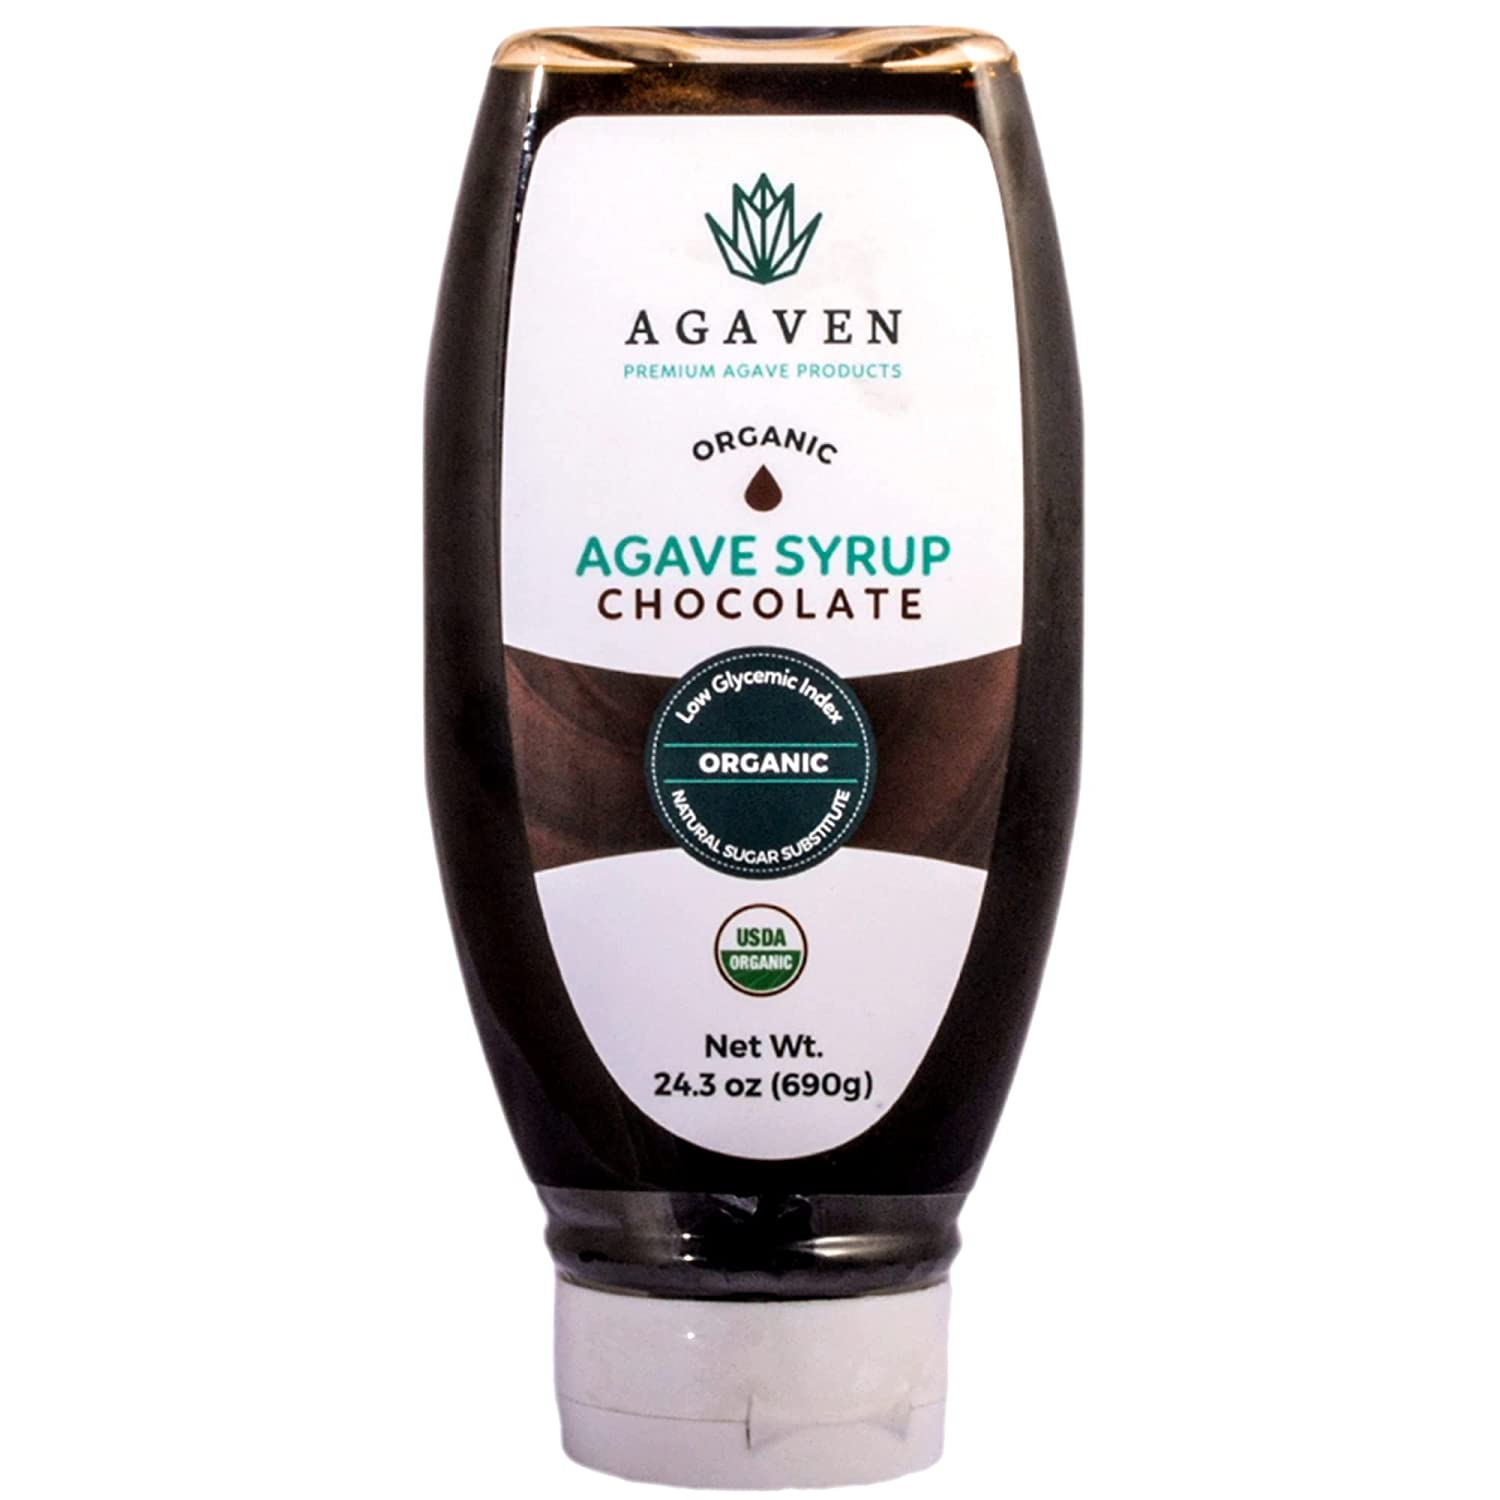 Chocolate Syrup By AGAVEN Vegan Nectar Tampa Mall Price reduction Blue Agave Cho Sweetener